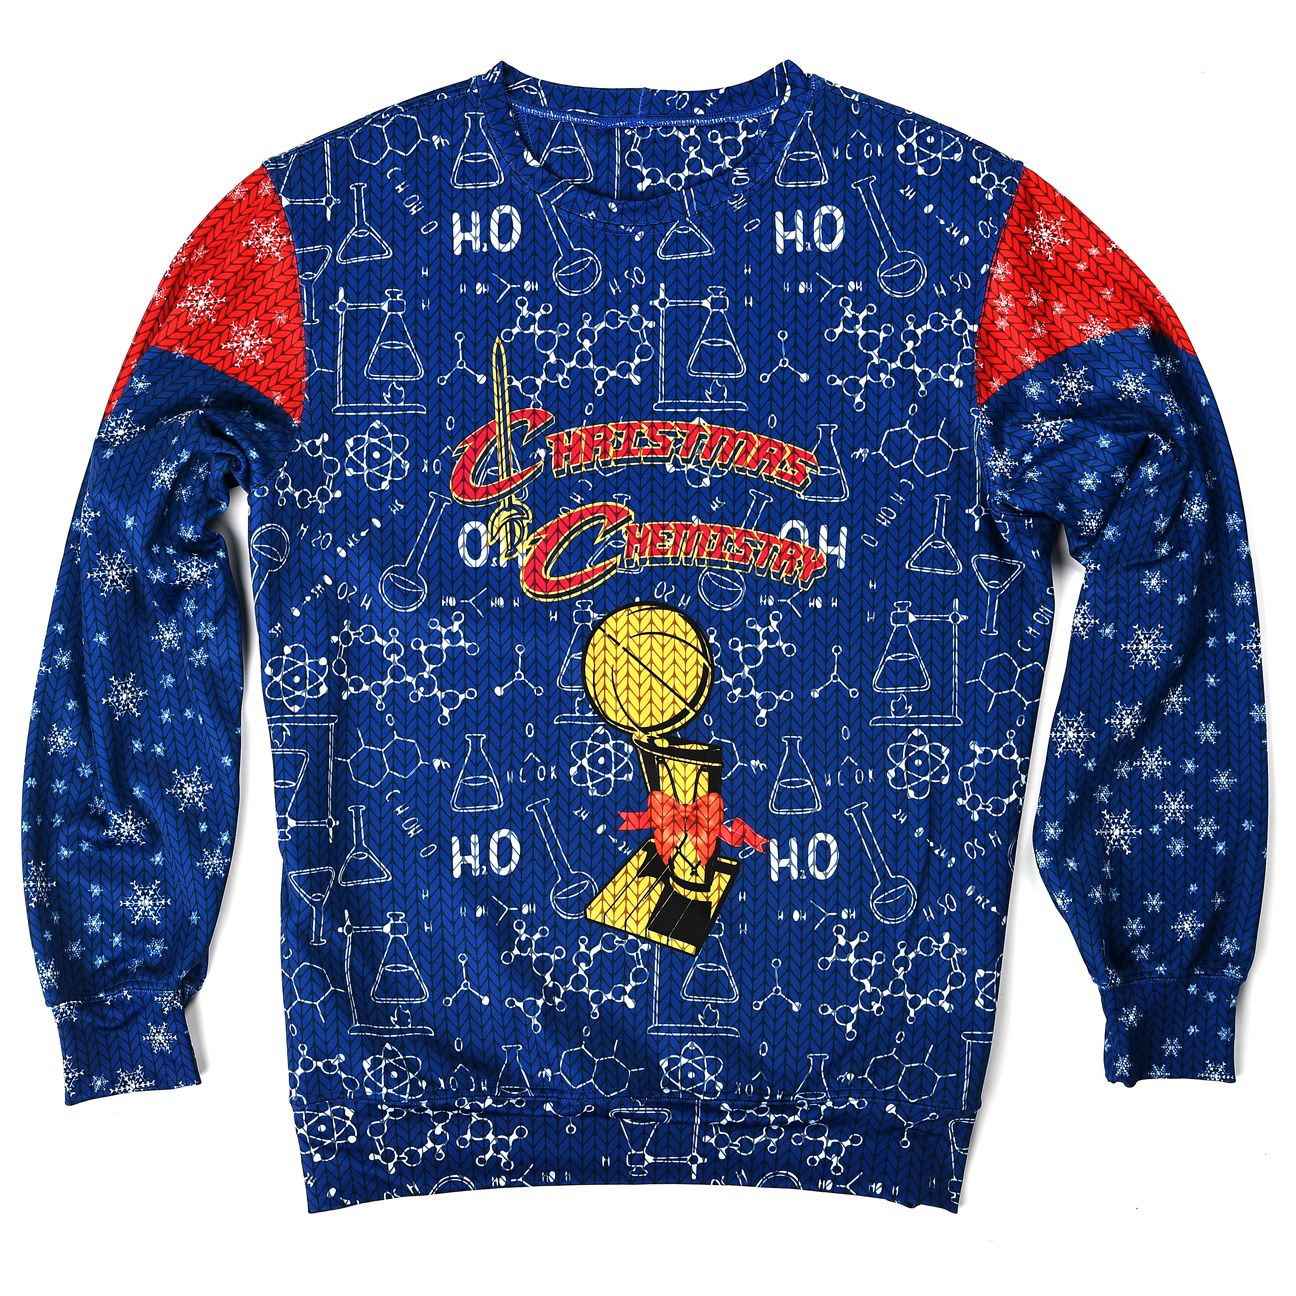 Cavaliers ugly sweater